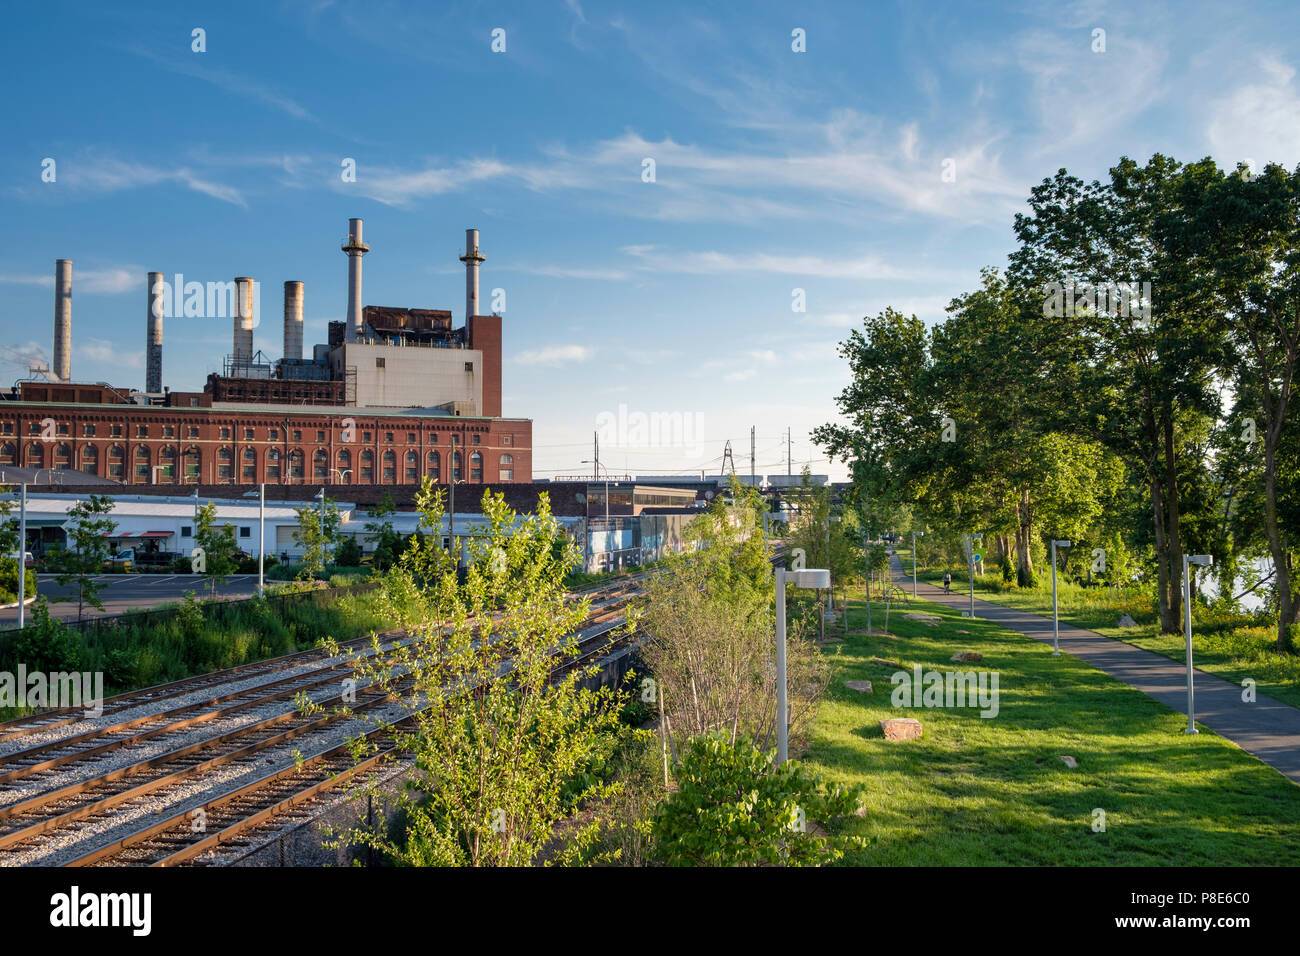 Schuylkill Banks Recreation Path in revitalized industrial area with Veolia Thermal Energy Plant, Philadelphia , Pennsylvania, USA - Stock Image